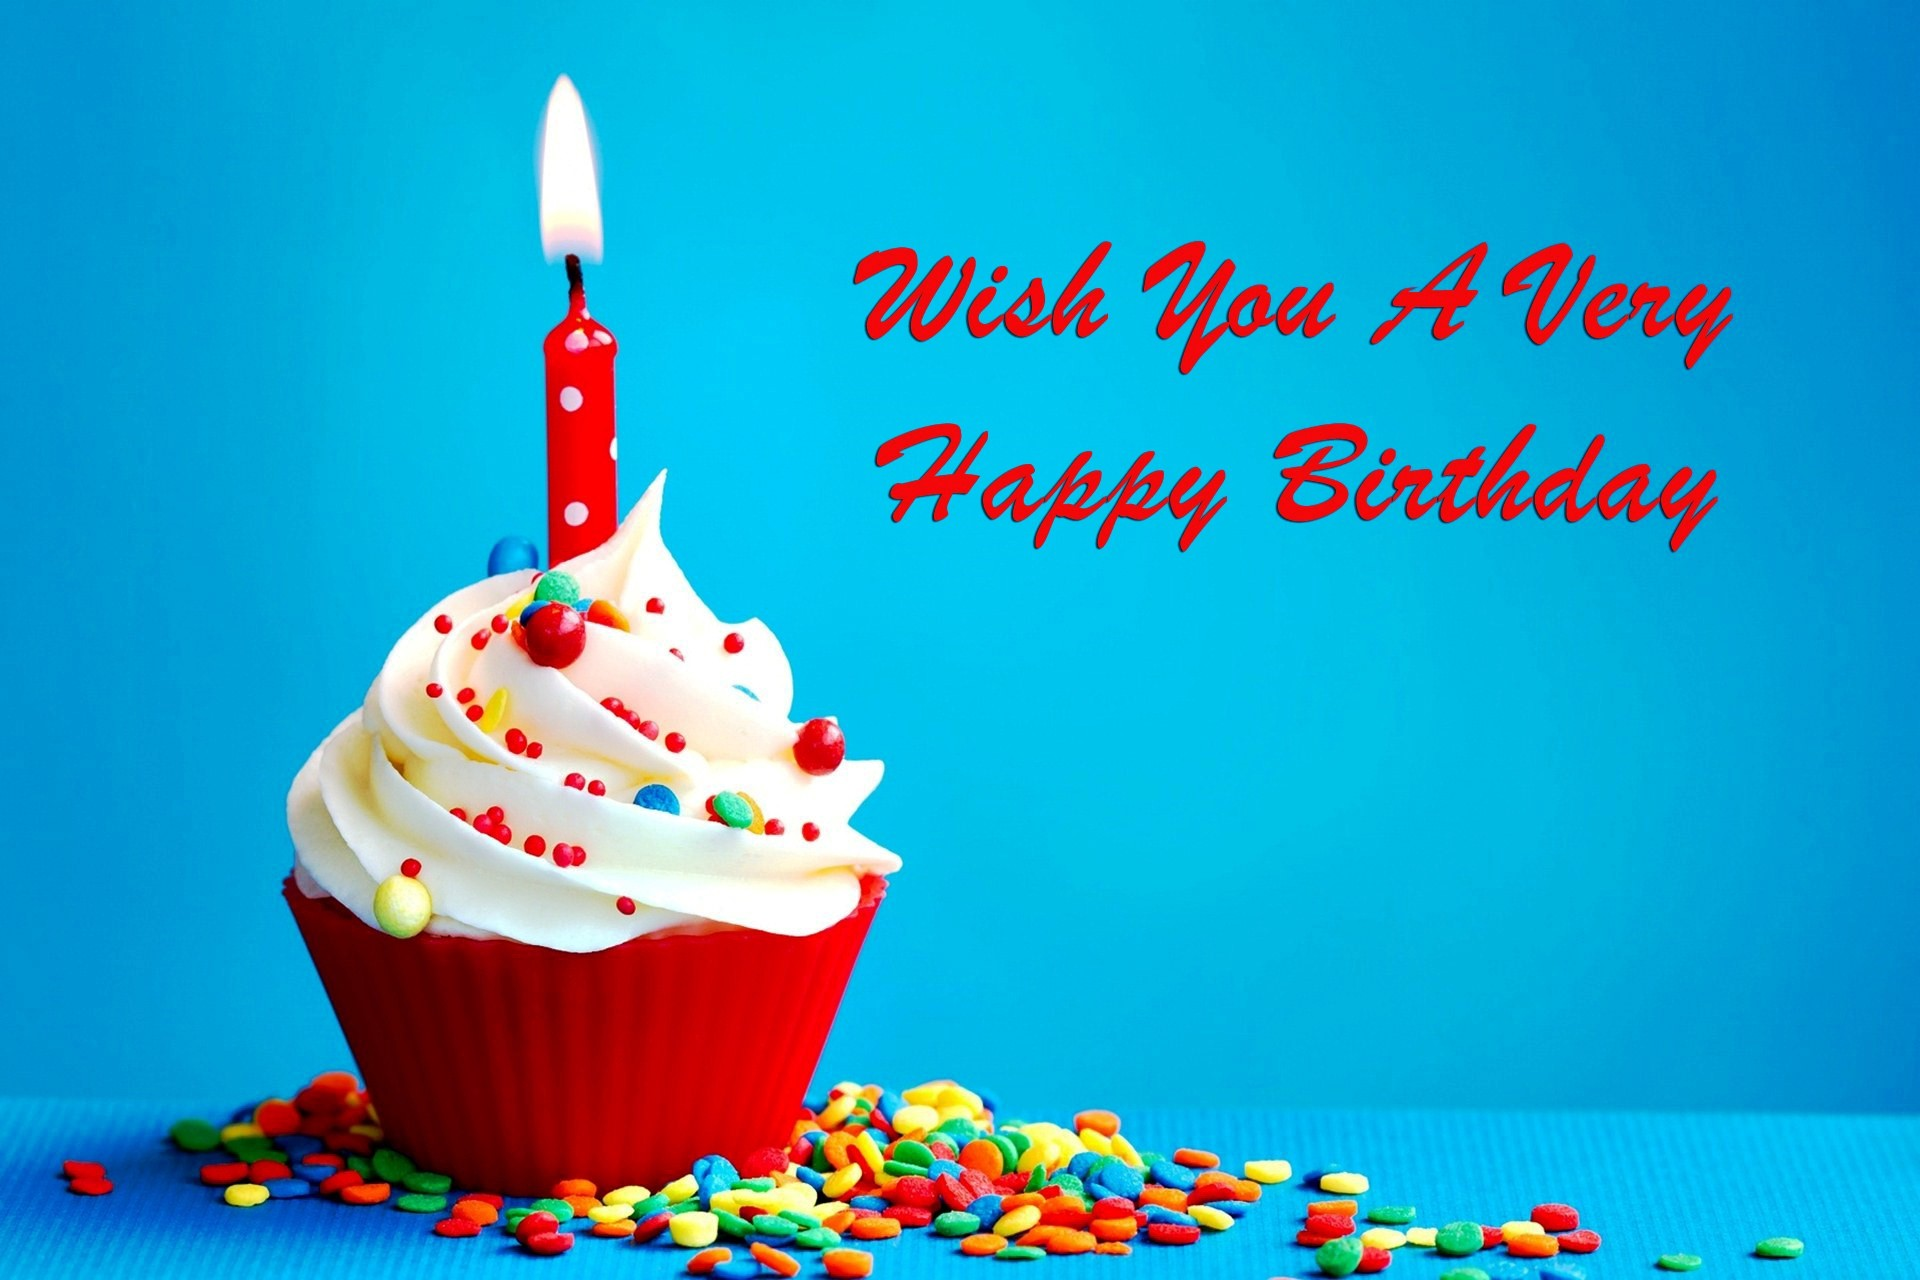 very happy birthday ; Wish-You-A-Very-Happy-Birthday-Pastry-Cake-HD-Photos-93972320